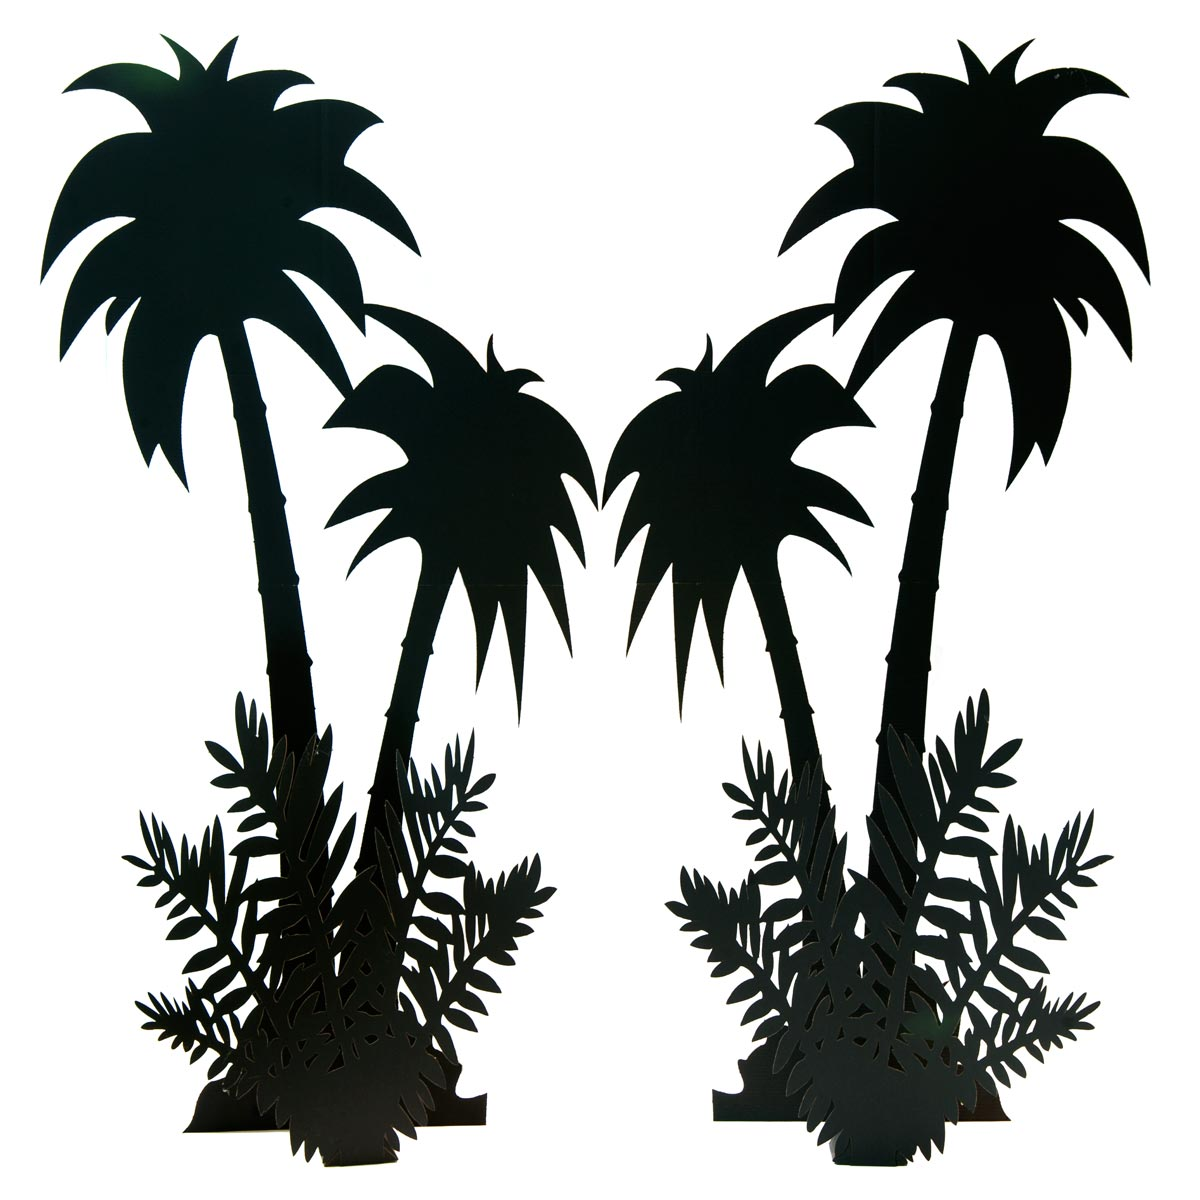 Desert Flora Ferns (set of 4) and Palm Trees (set of 2) Kit